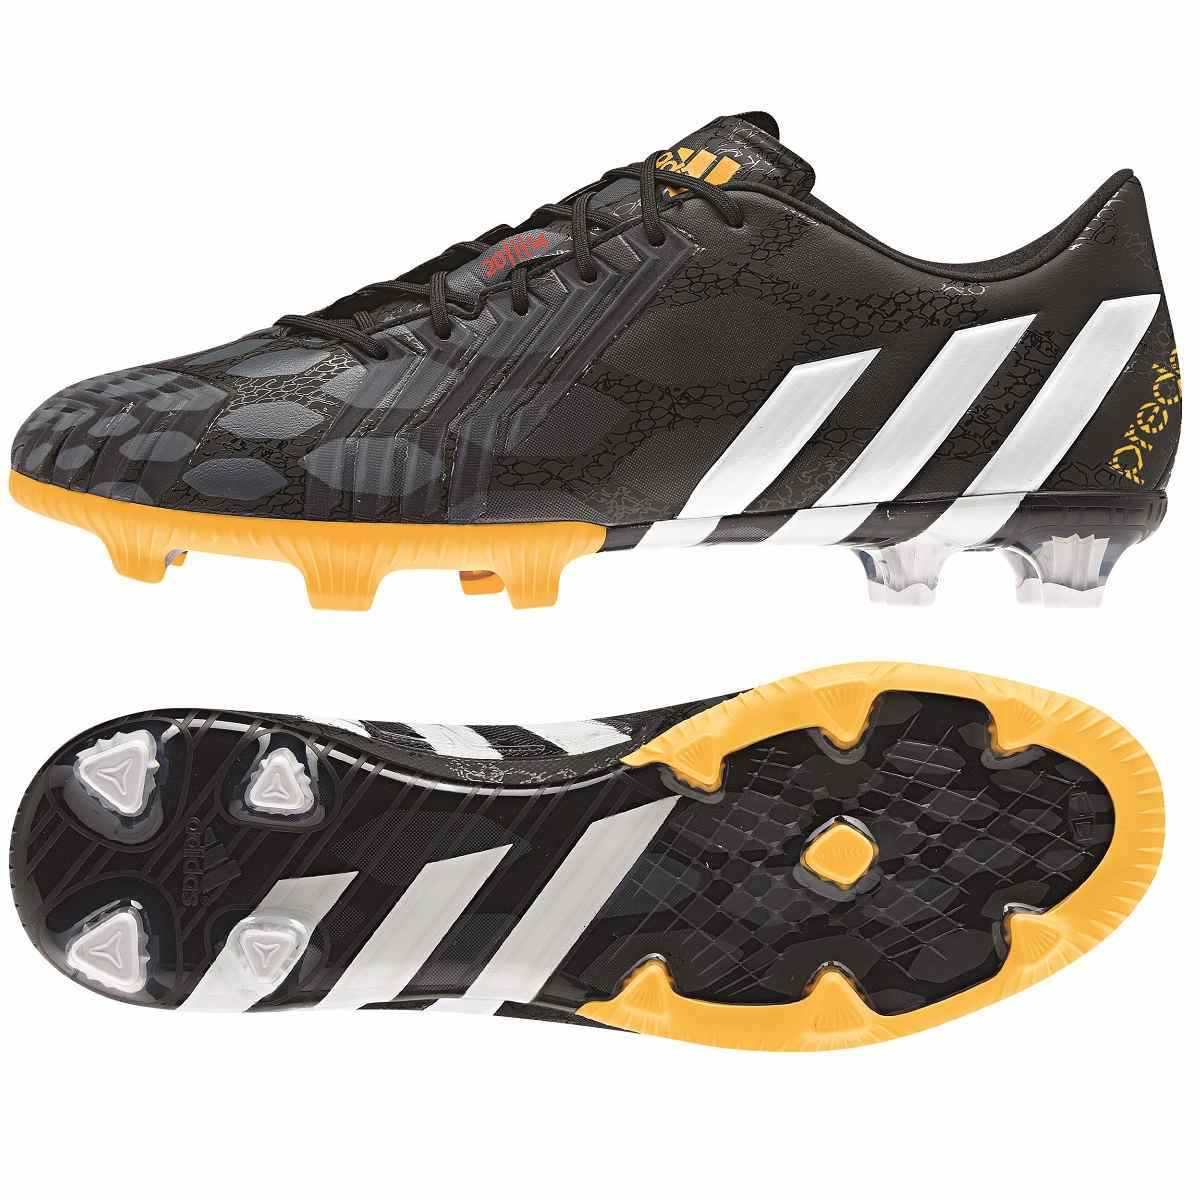 adidas predator instinct fg schuhe fu ballschuhe outdoor. Black Bedroom Furniture Sets. Home Design Ideas